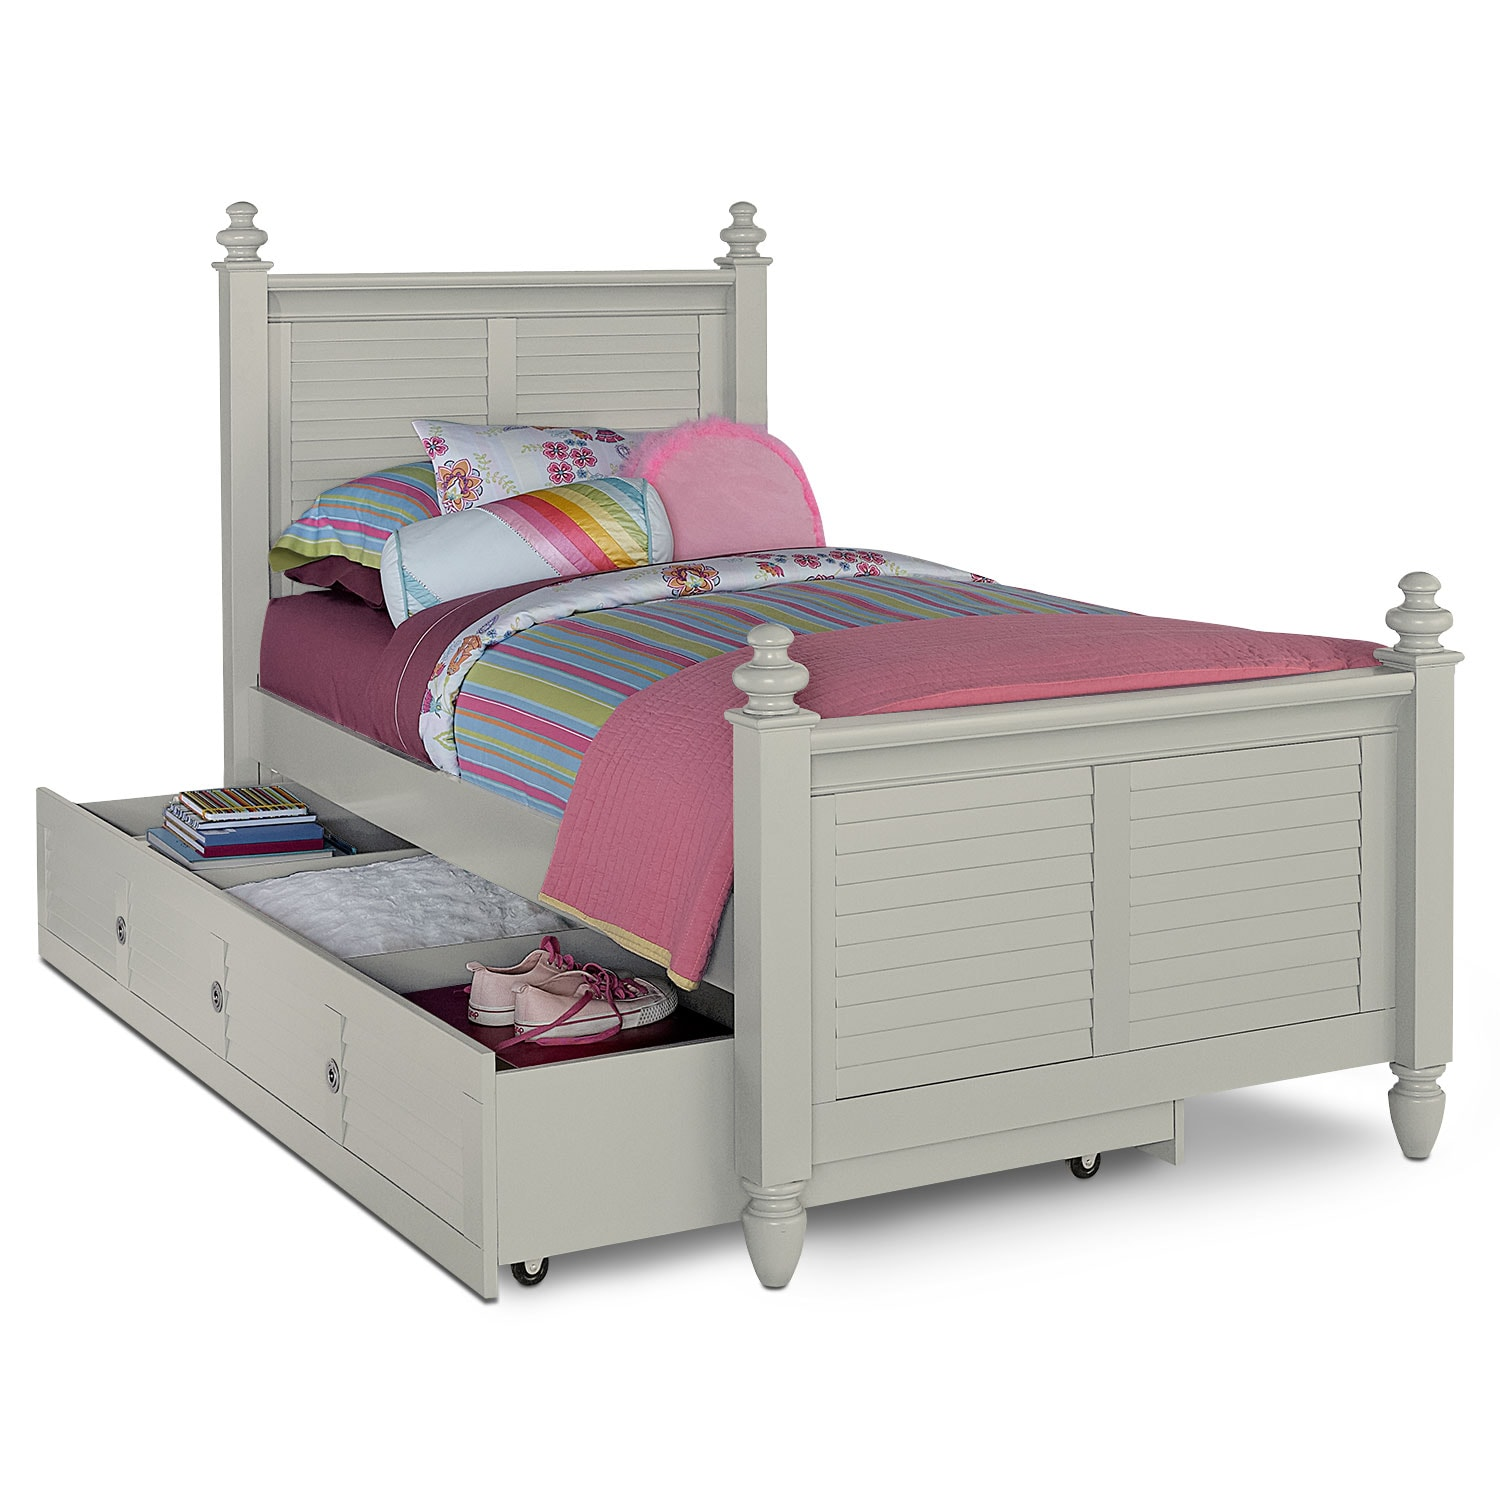 Kids Furniture - Seaside Full Bed with Trundle - Gray